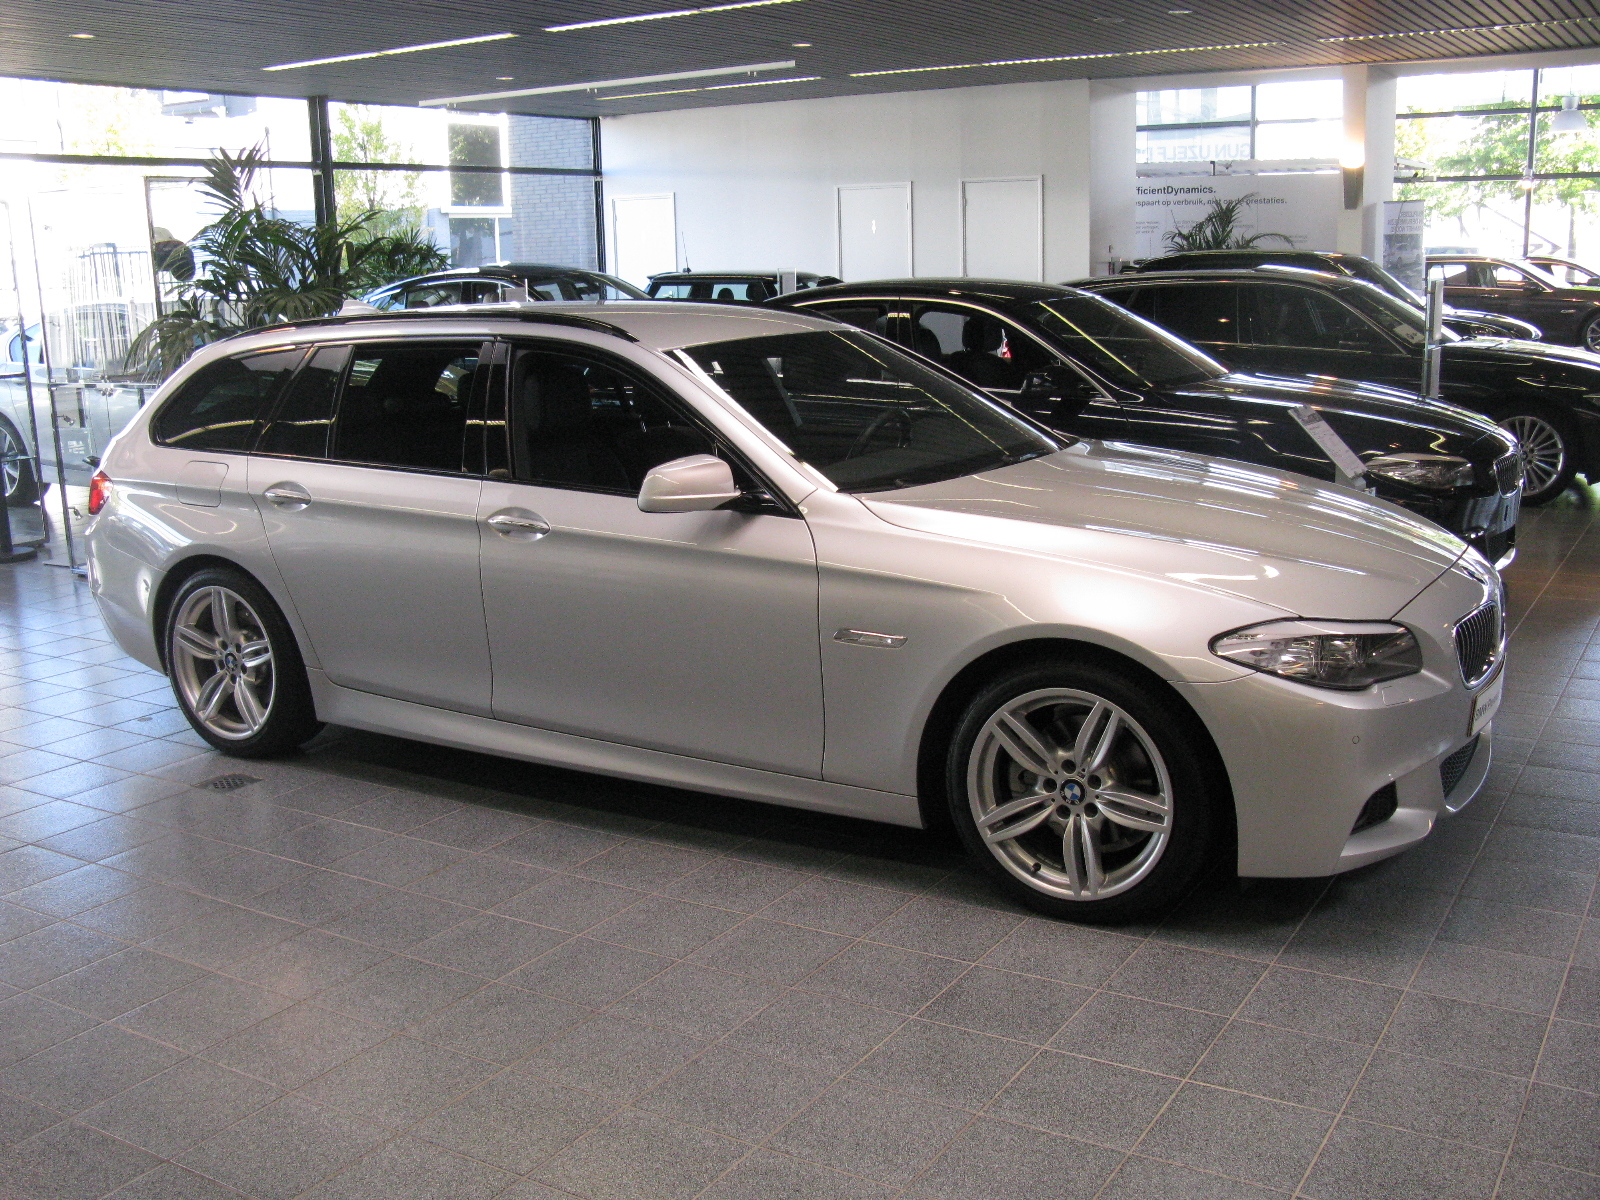 file bmw 520d touring m sport f11 10105553353 jpg wikimedia commons. Black Bedroom Furniture Sets. Home Design Ideas